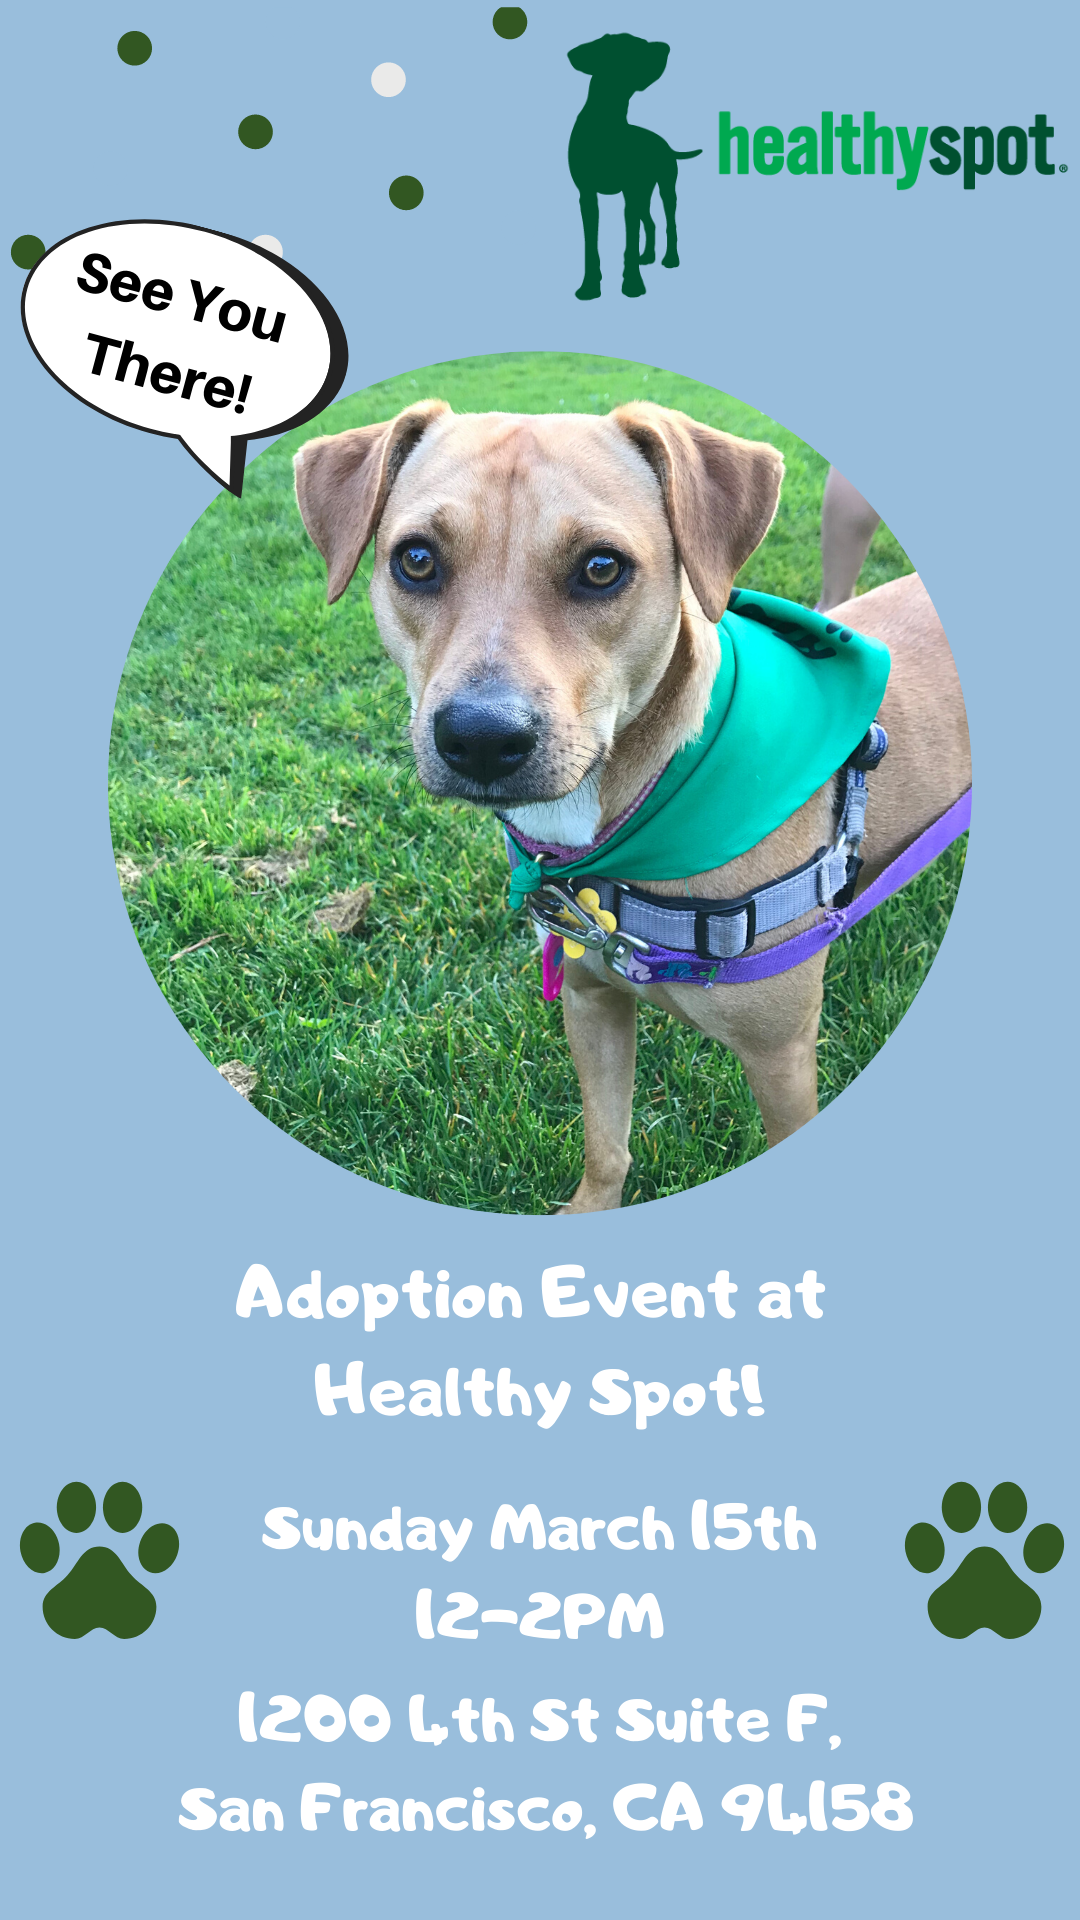 Adoption Event at Healthy Spot! @ Healthy Spot